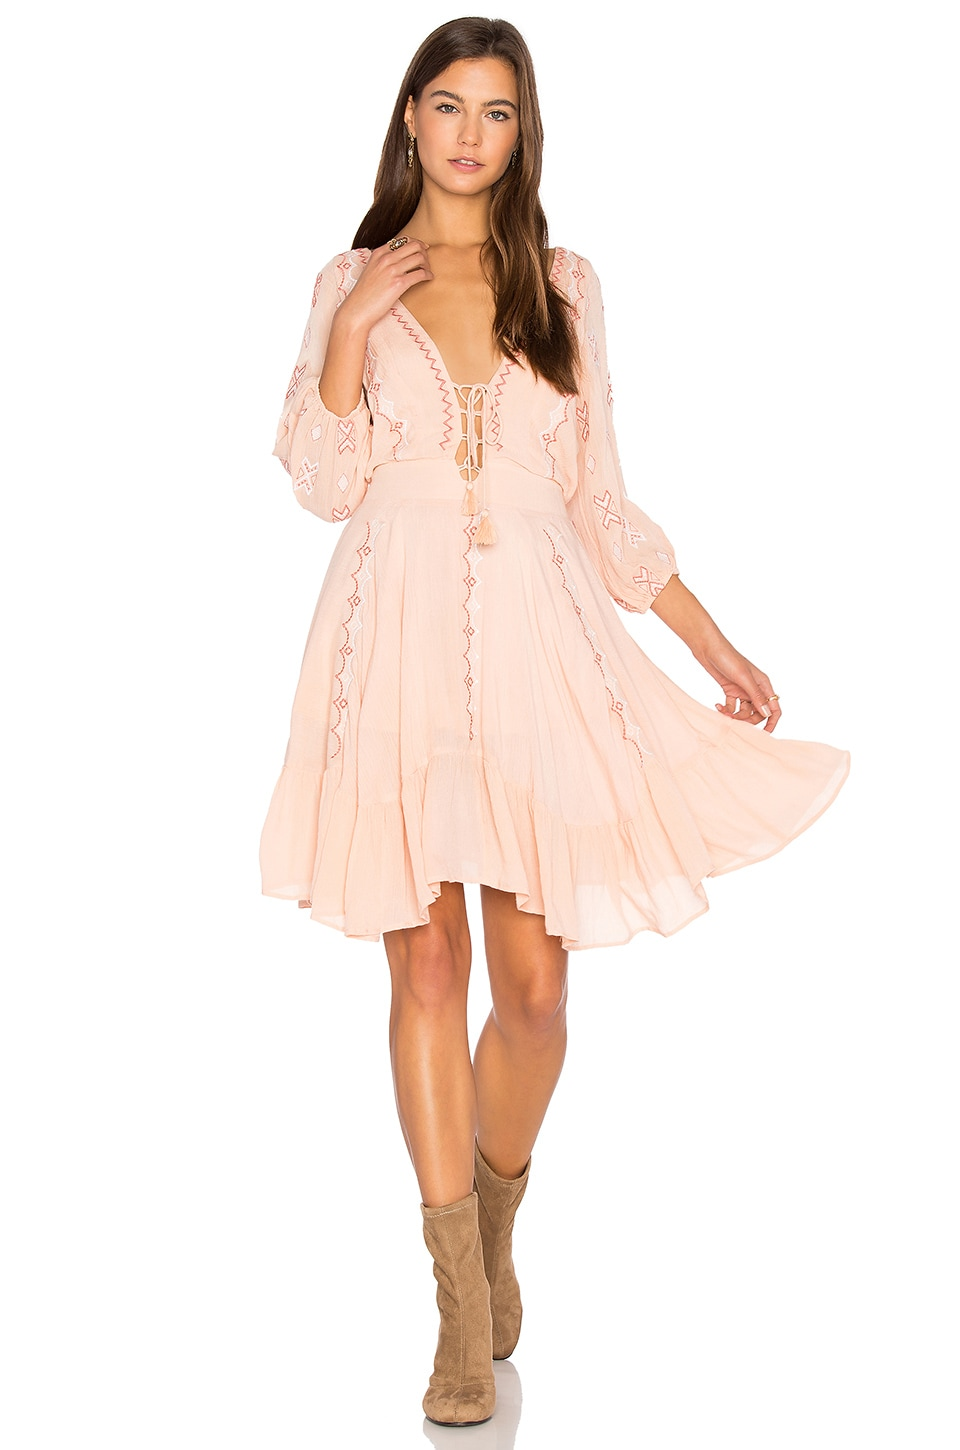 PIPER Indo Dress in Peony